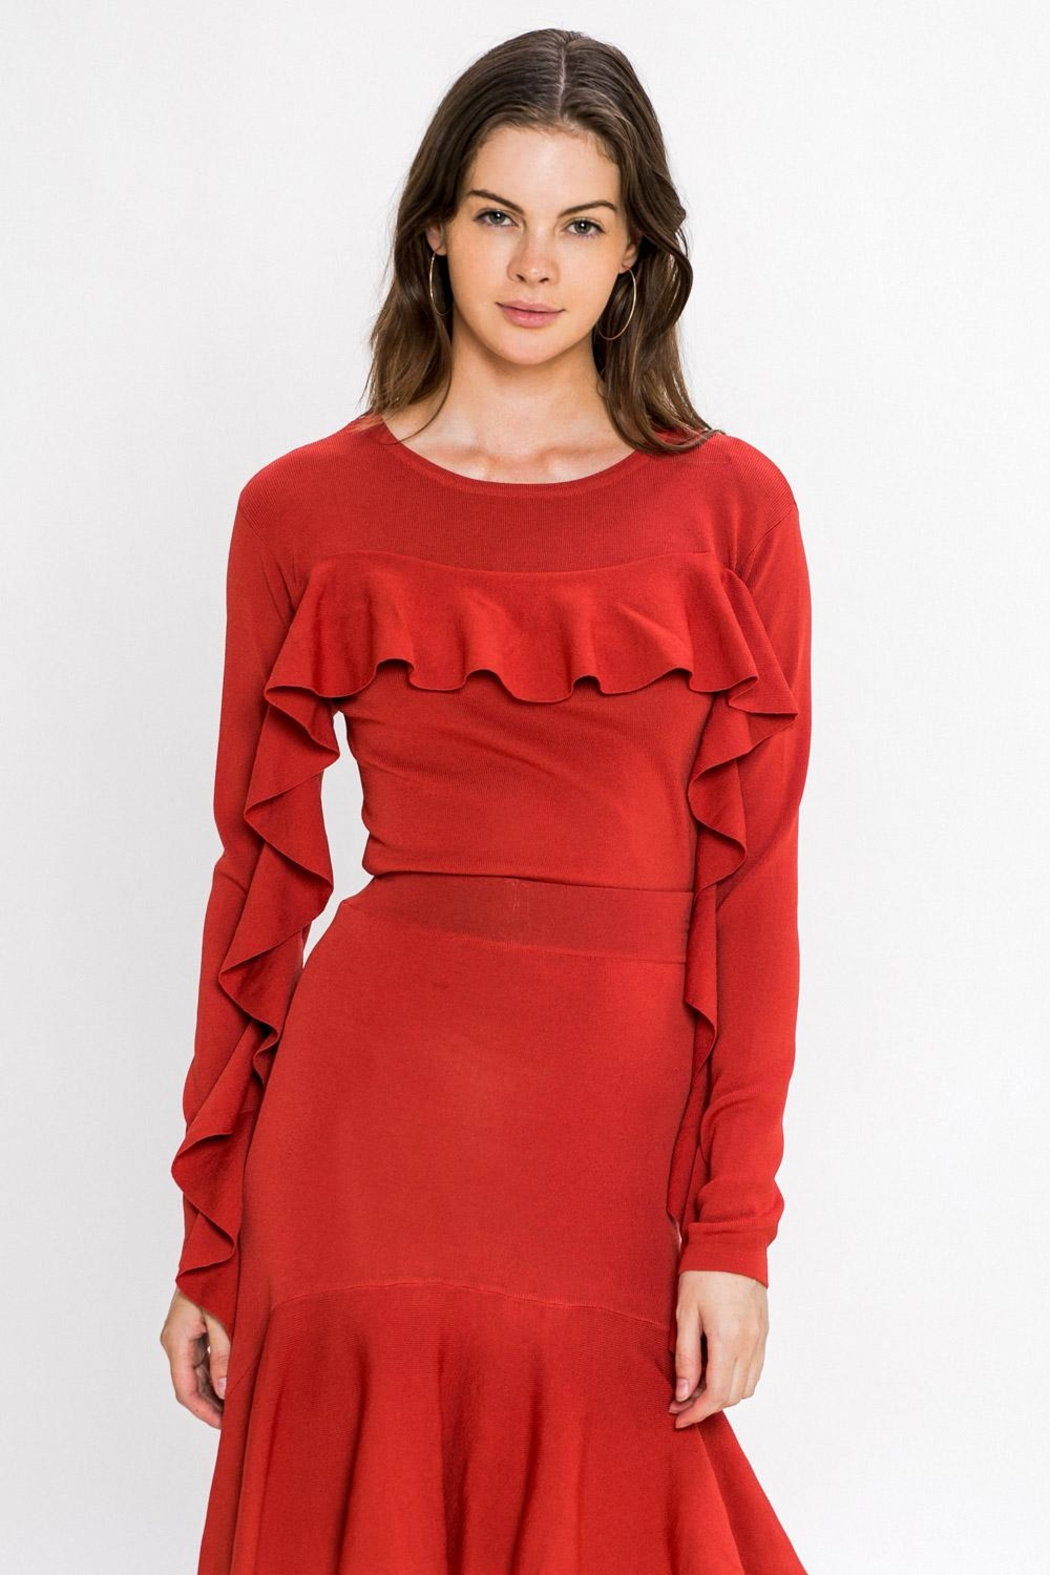 A. Calin Rust Ruffle Sweater Top - Main Image